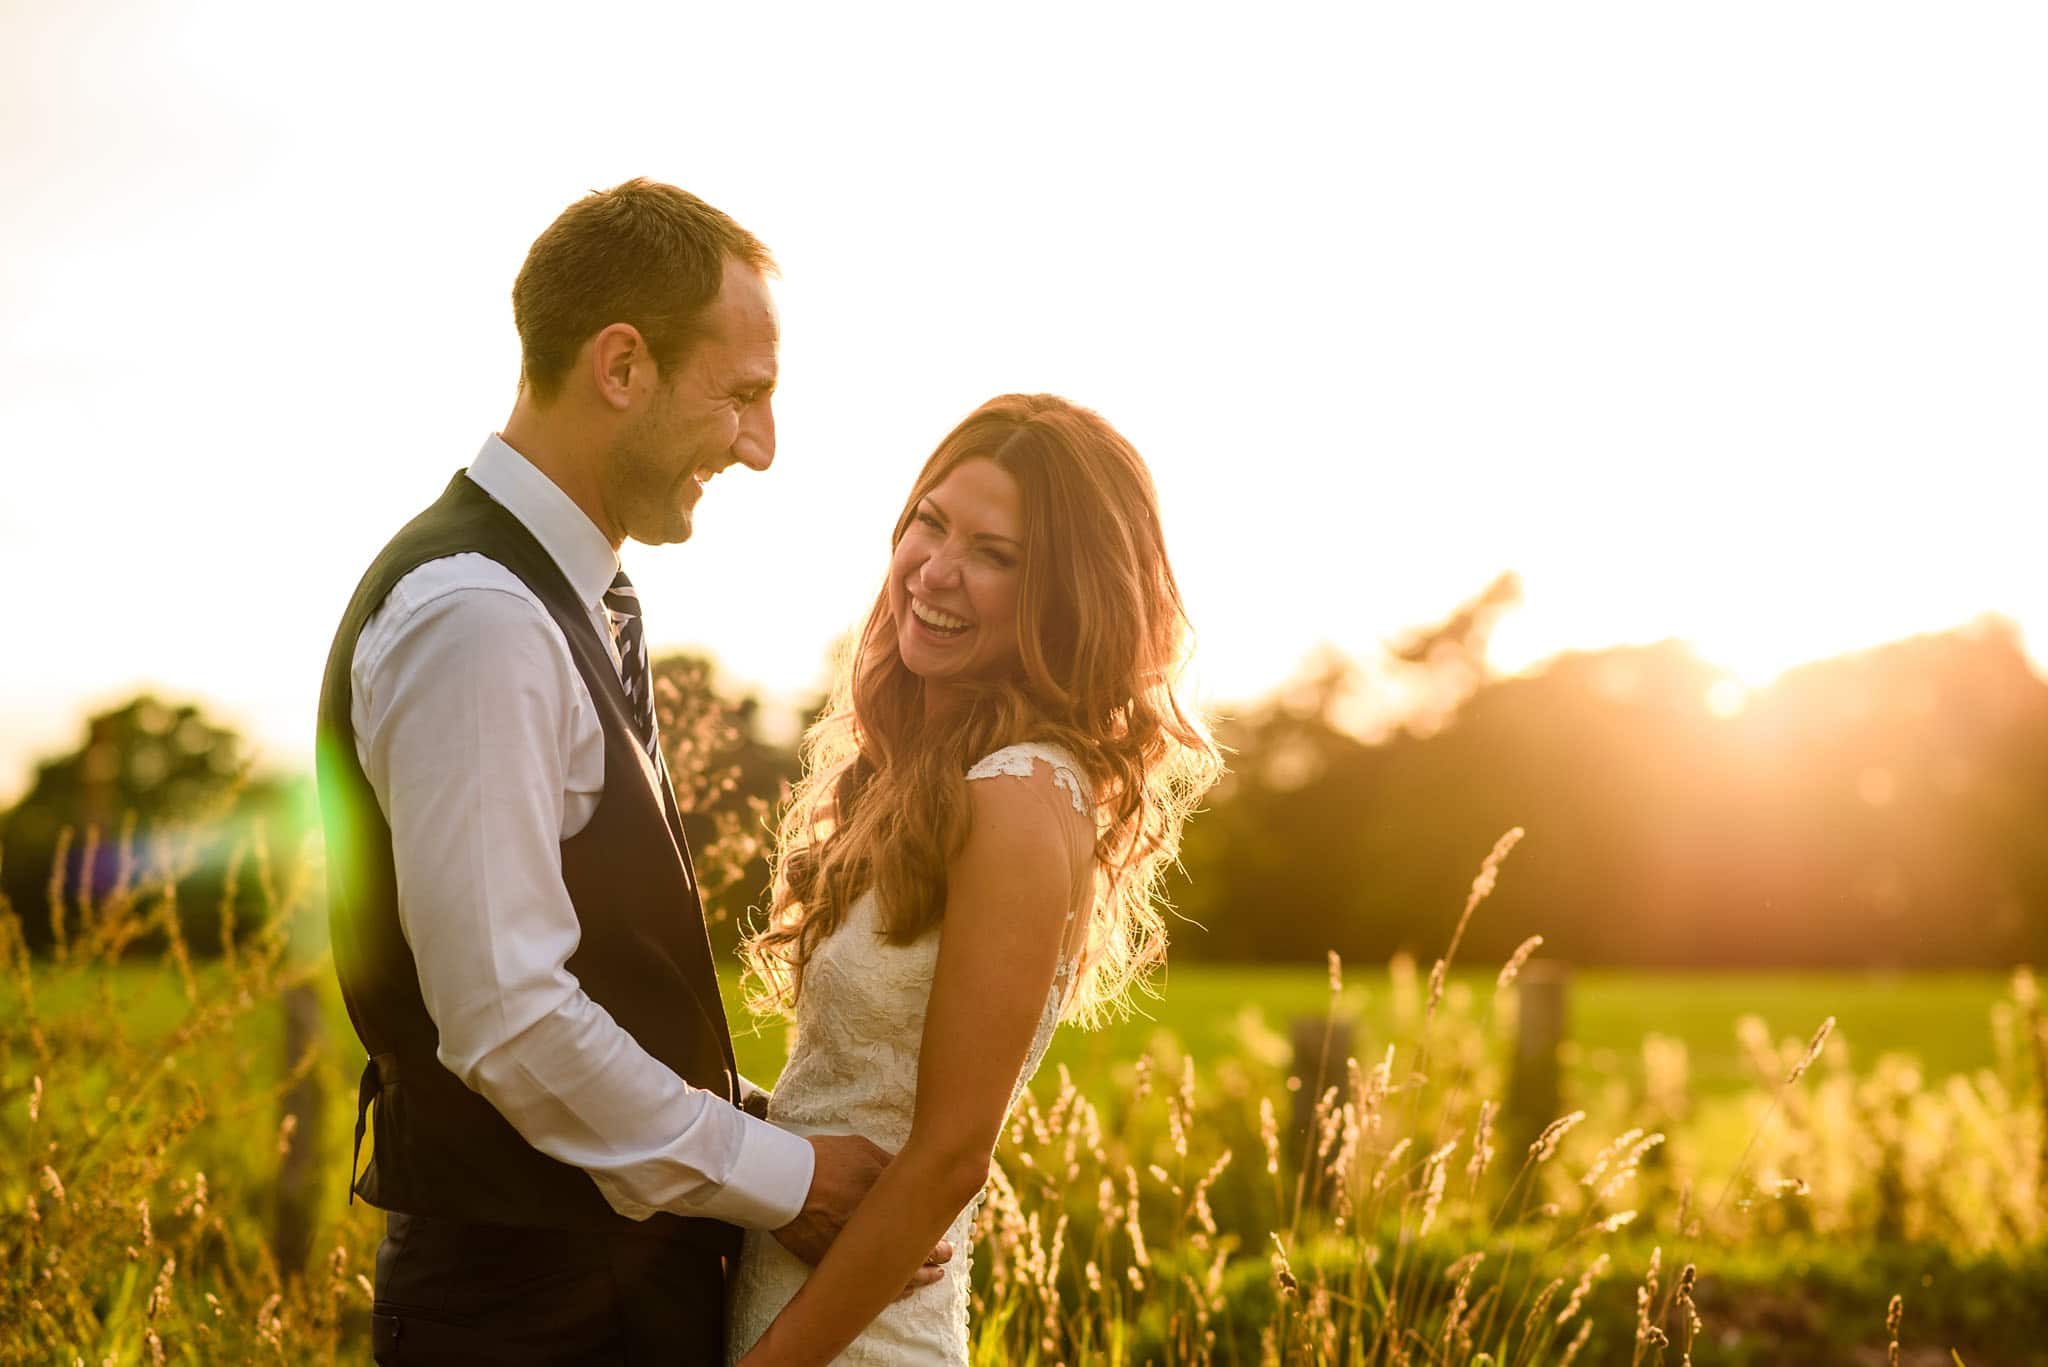 bride and groom laughing in the evening sunshine